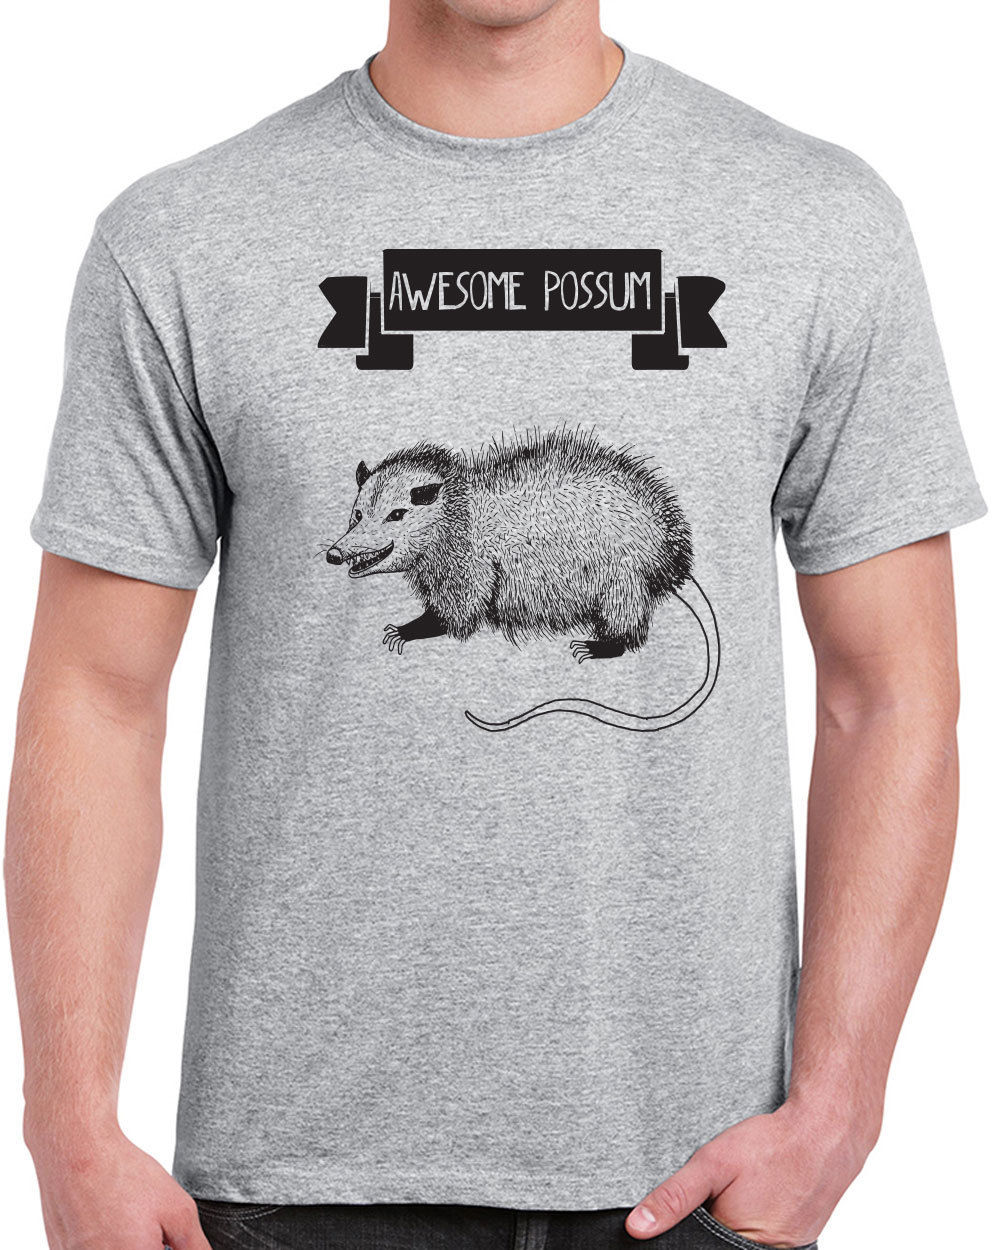 378 Awesome Possum mens T-shirt funny t-shirt mammal animal lover vegan shirt Simple Sty ...